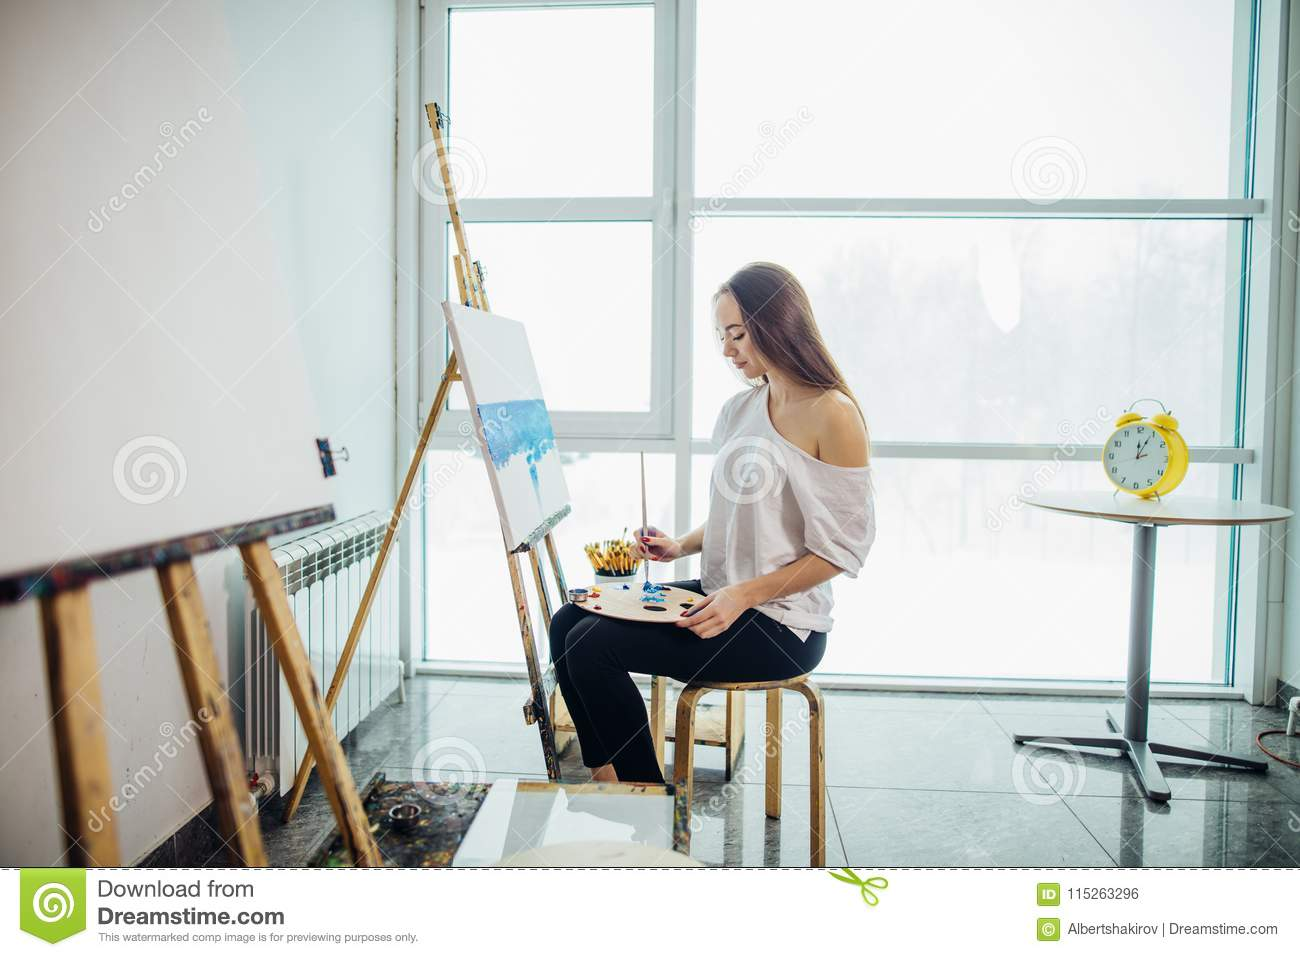 Young Painter Woman Painting On Easel In Workshop Stock